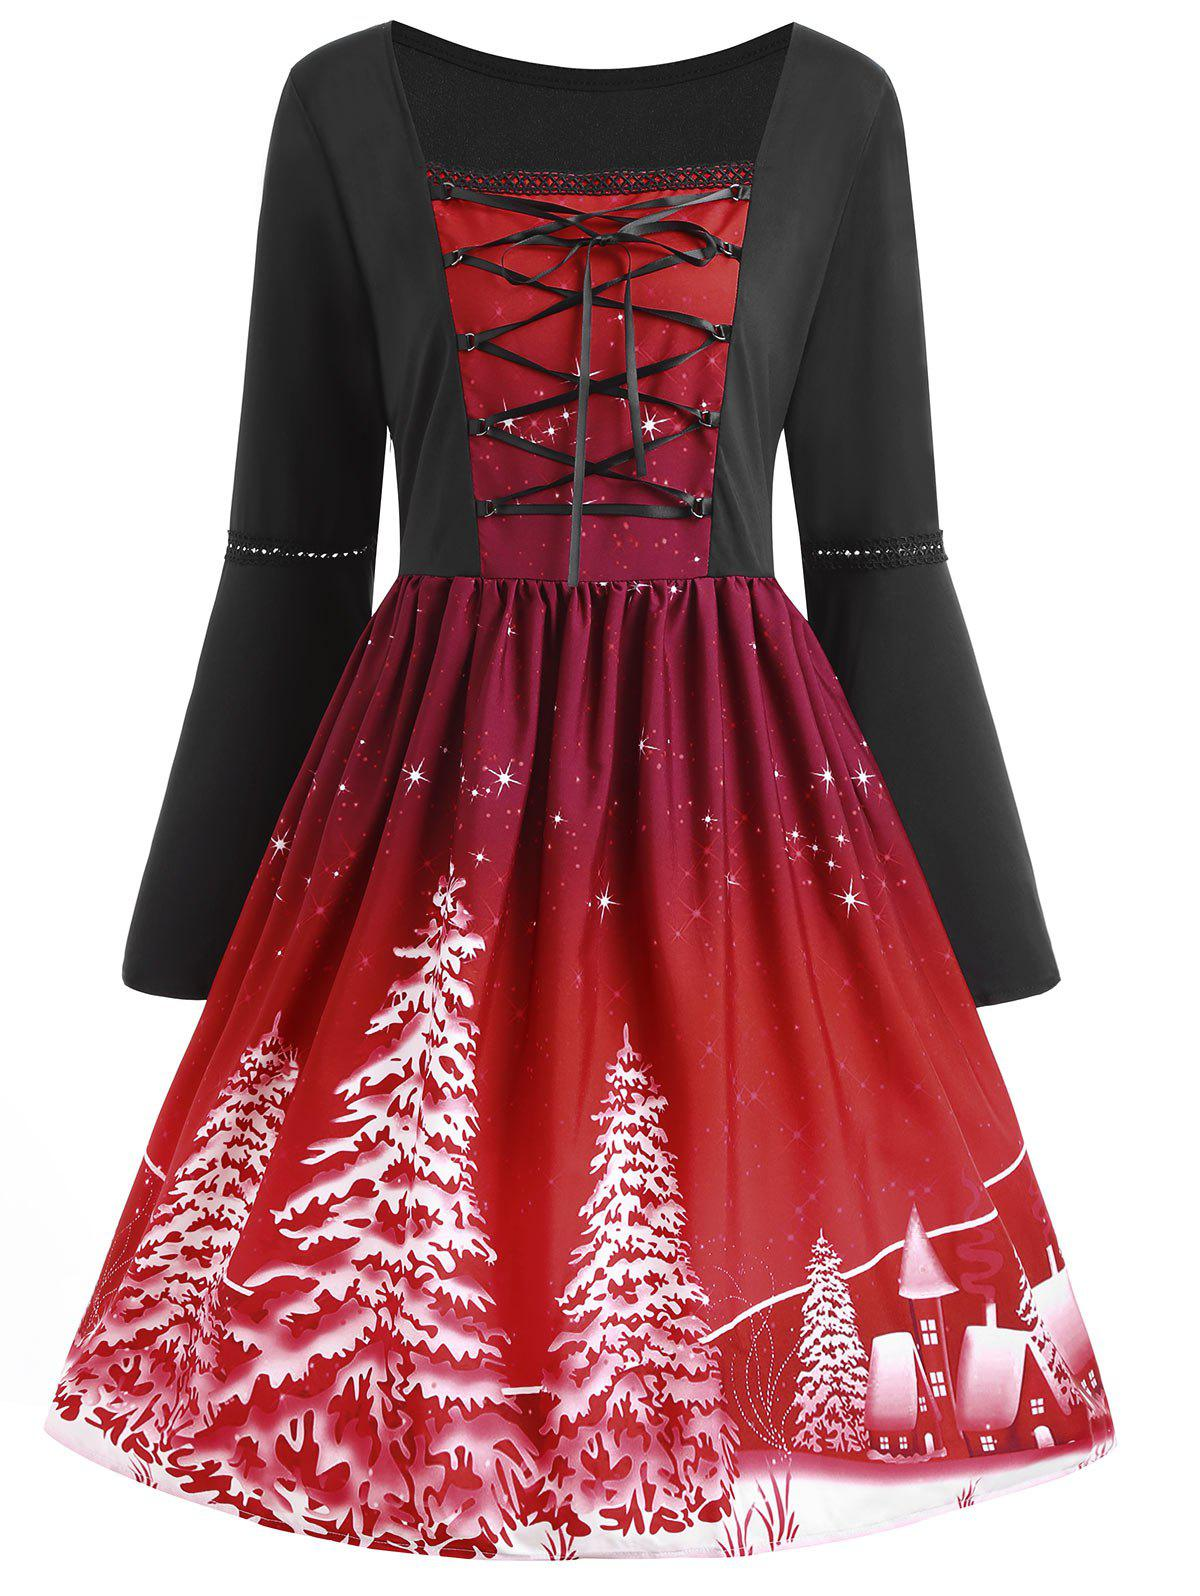 Christmas Tree Print Plus Size Lace Up DressWOMEN<br><br>Size: 4XL; Color: WINE RED; Style: Vintage; Material: Cotton,Polyester; Silhouette: A-Line; Dresses Length: Knee-Length; Neckline: Square Collar; Sleeve Type: Flare Sleeve; Sleeve Length: Long Sleeves; Embellishment: Criss-Cross,Lace; Pattern Type: Plant; With Belt: No; Season: Fall,Spring; Weight: 0.3200kg; Package Contents: 1 x Dress;